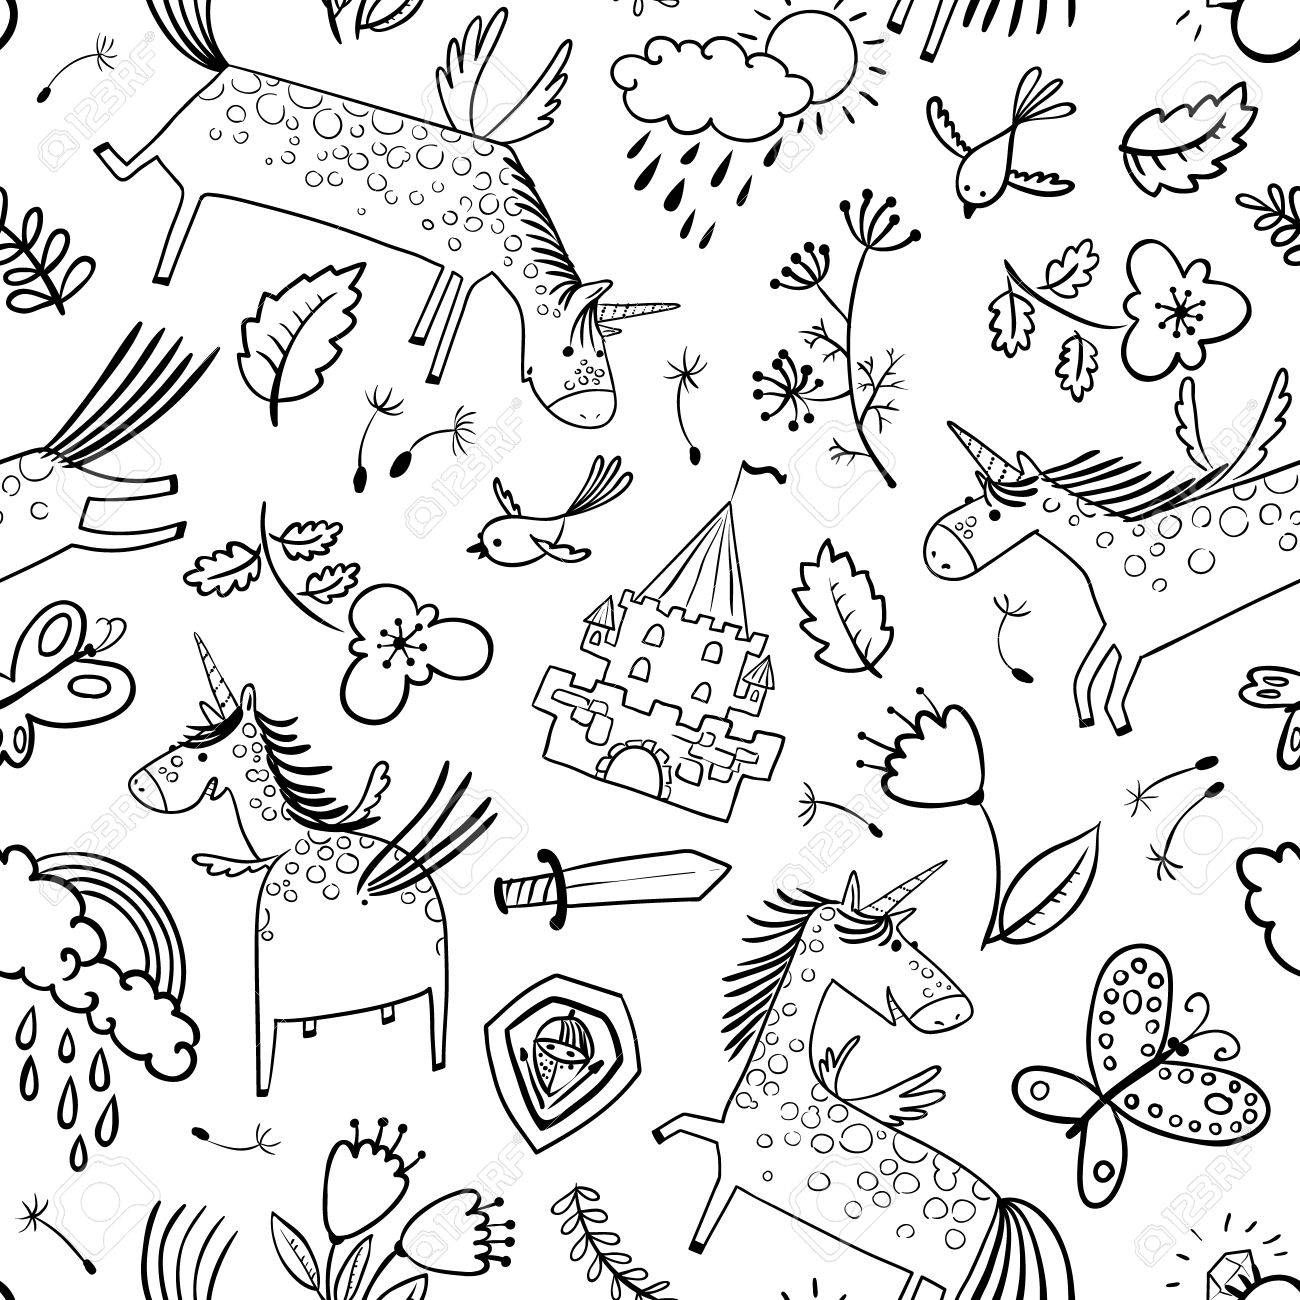 Rainbow magic weather fairies coloring pages - Rainbow Clouds Vector Doodle Seamless Pattern With Magic Unicorns Background With Rainbow Clouds